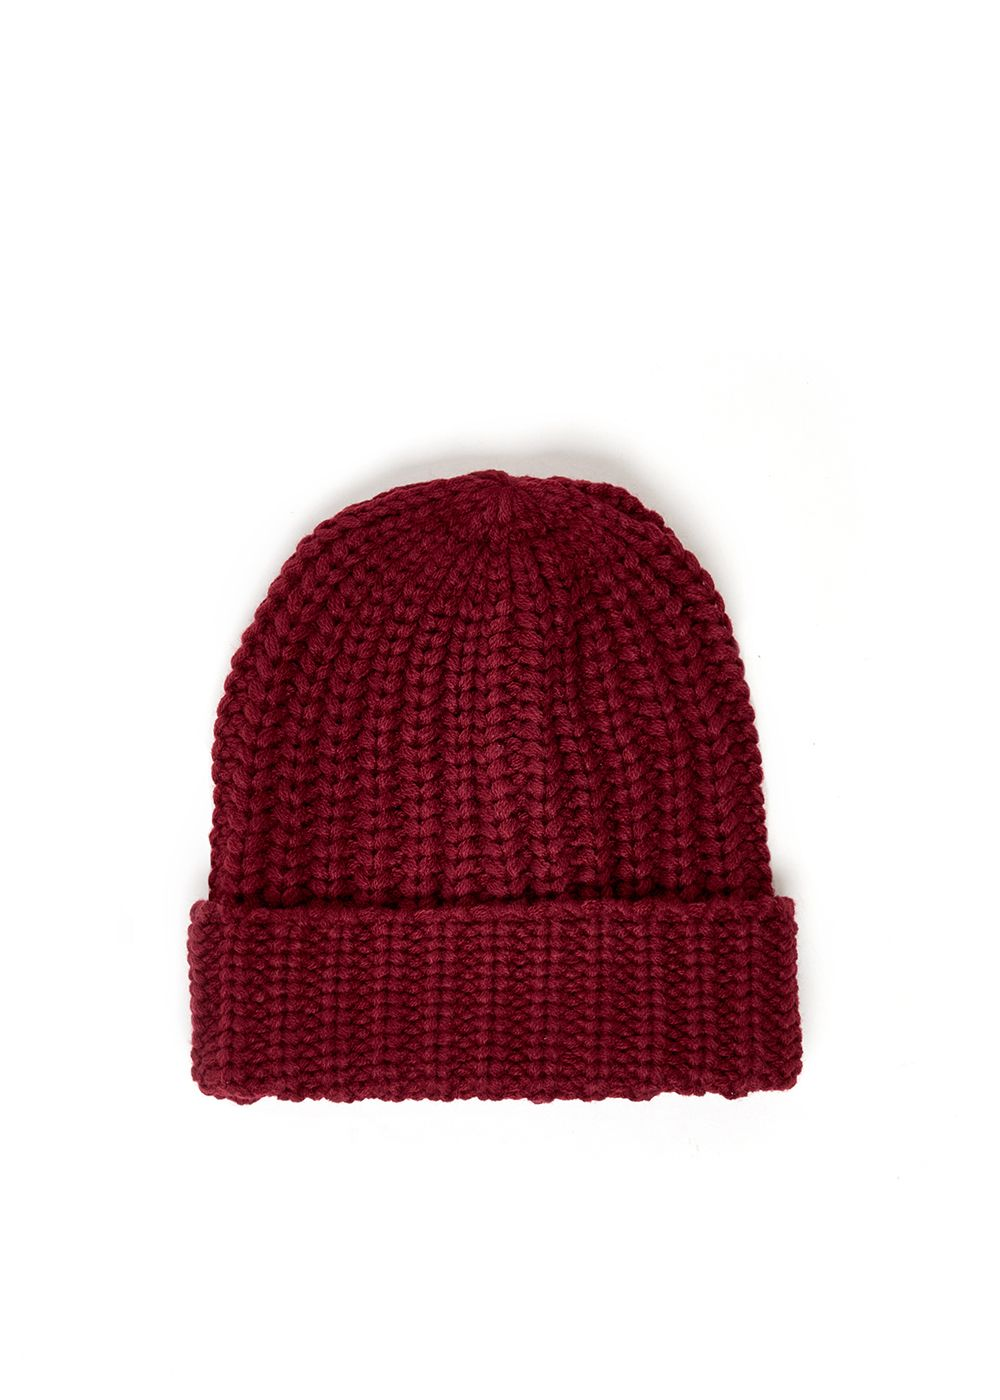 CAPPELLO LUCY A COSTE BORDEAUX